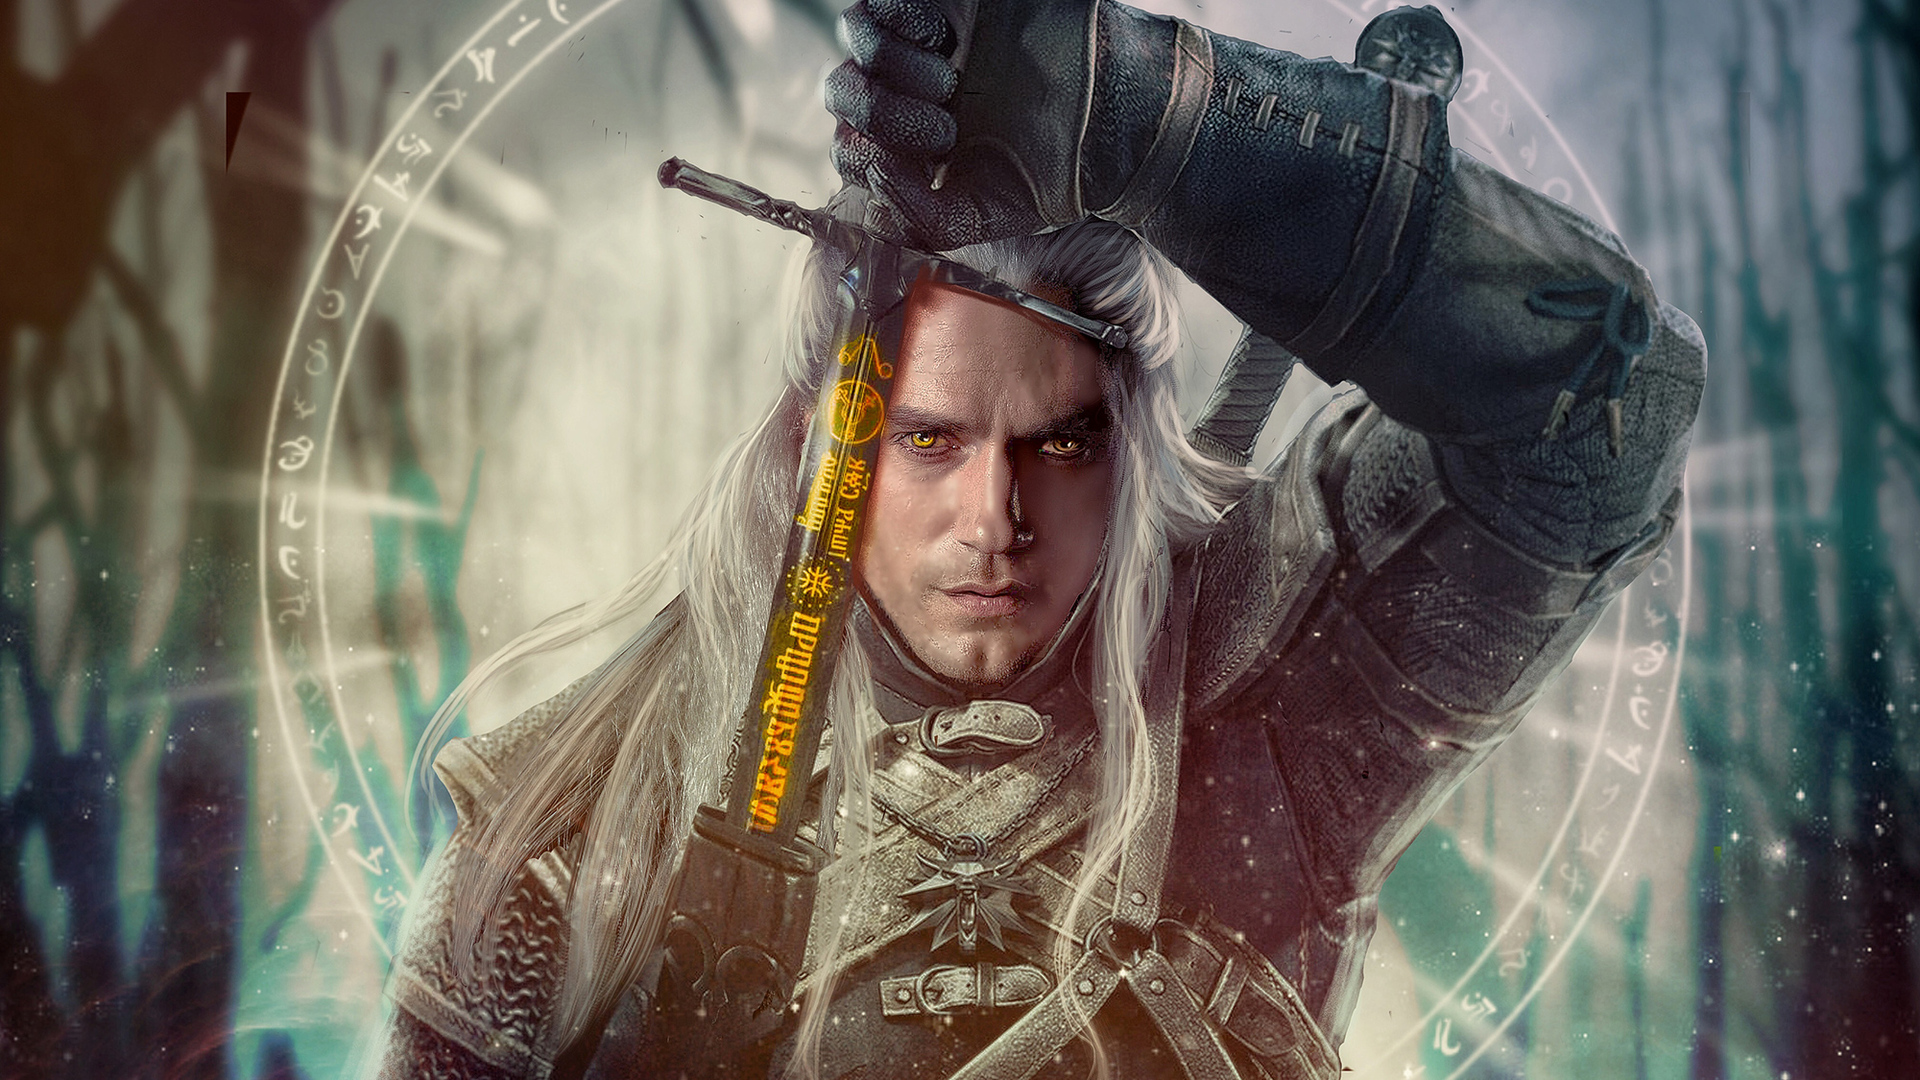 1920x1080 The Witcher Tv Series Laptop Full HD 1080P HD 4k ...